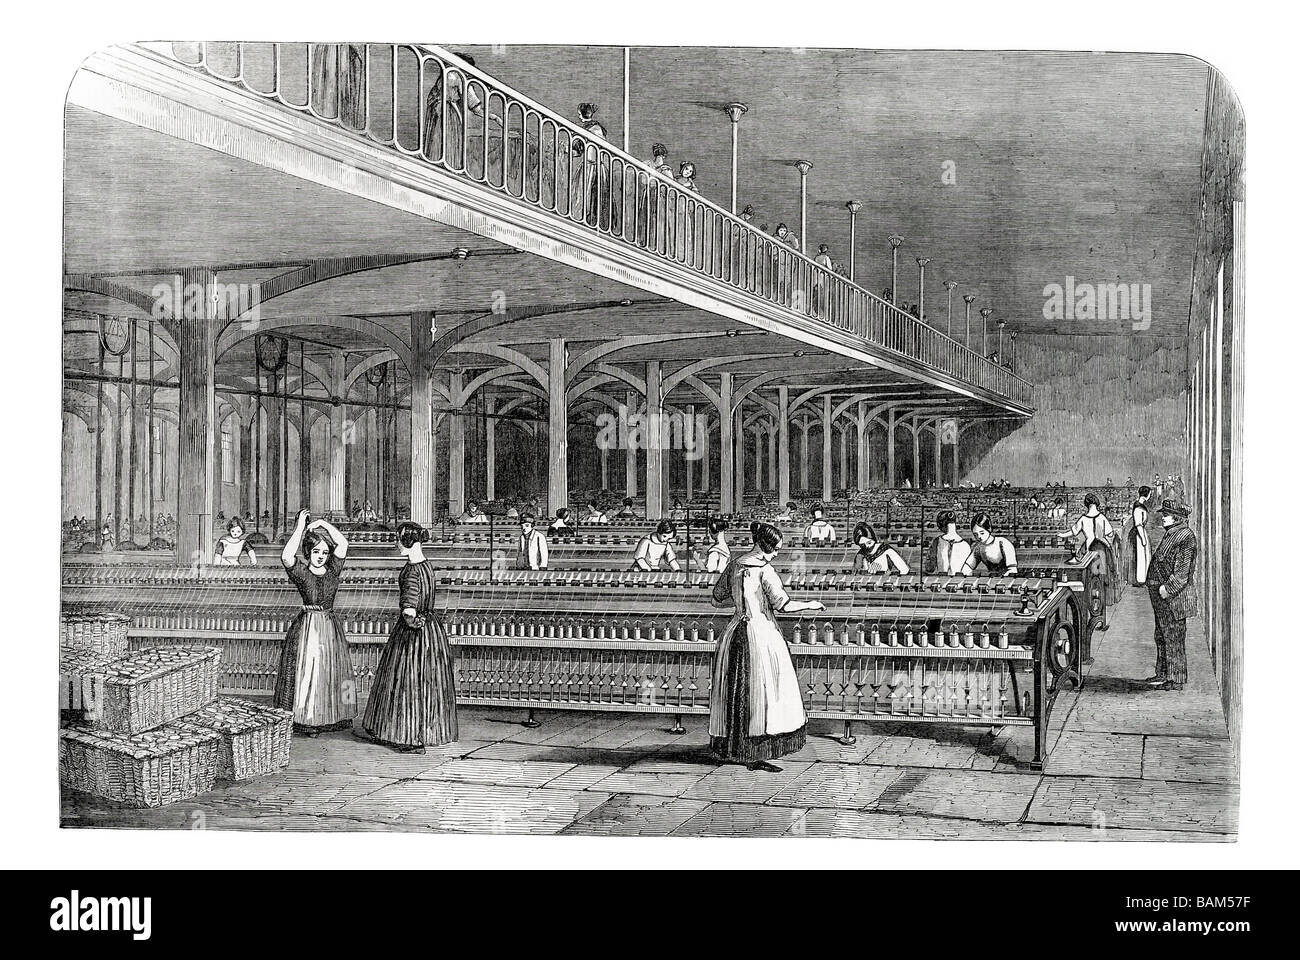 dean mills the doubling room with workers at time of Prince Albert's Visit to Barrow Bridge Halliwell, Deane, - Stock Image